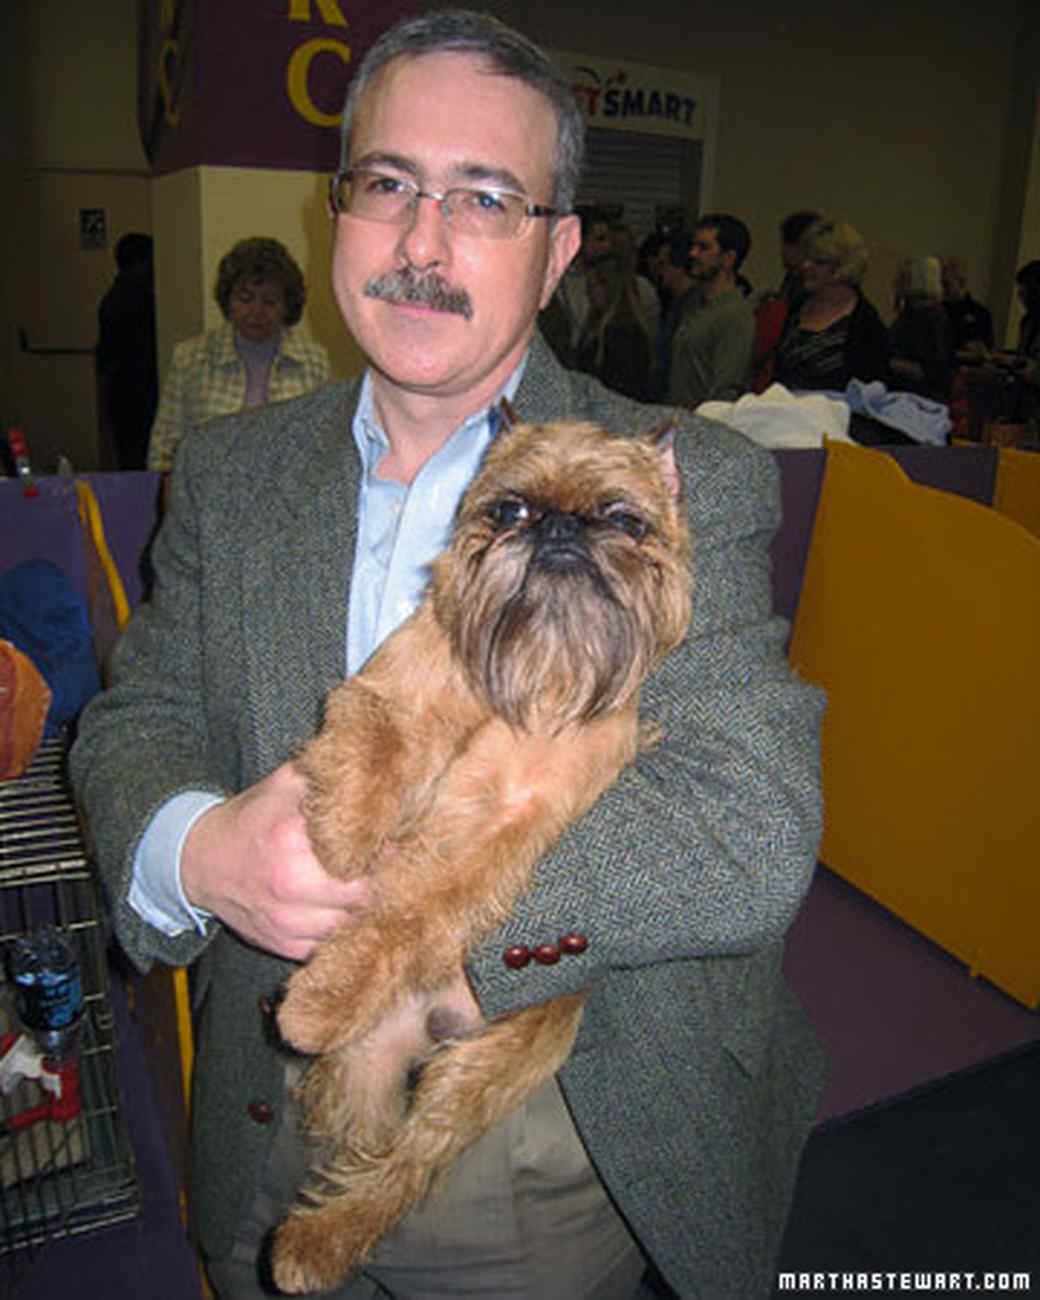 st_brussels_griffon_with_ow.jpg